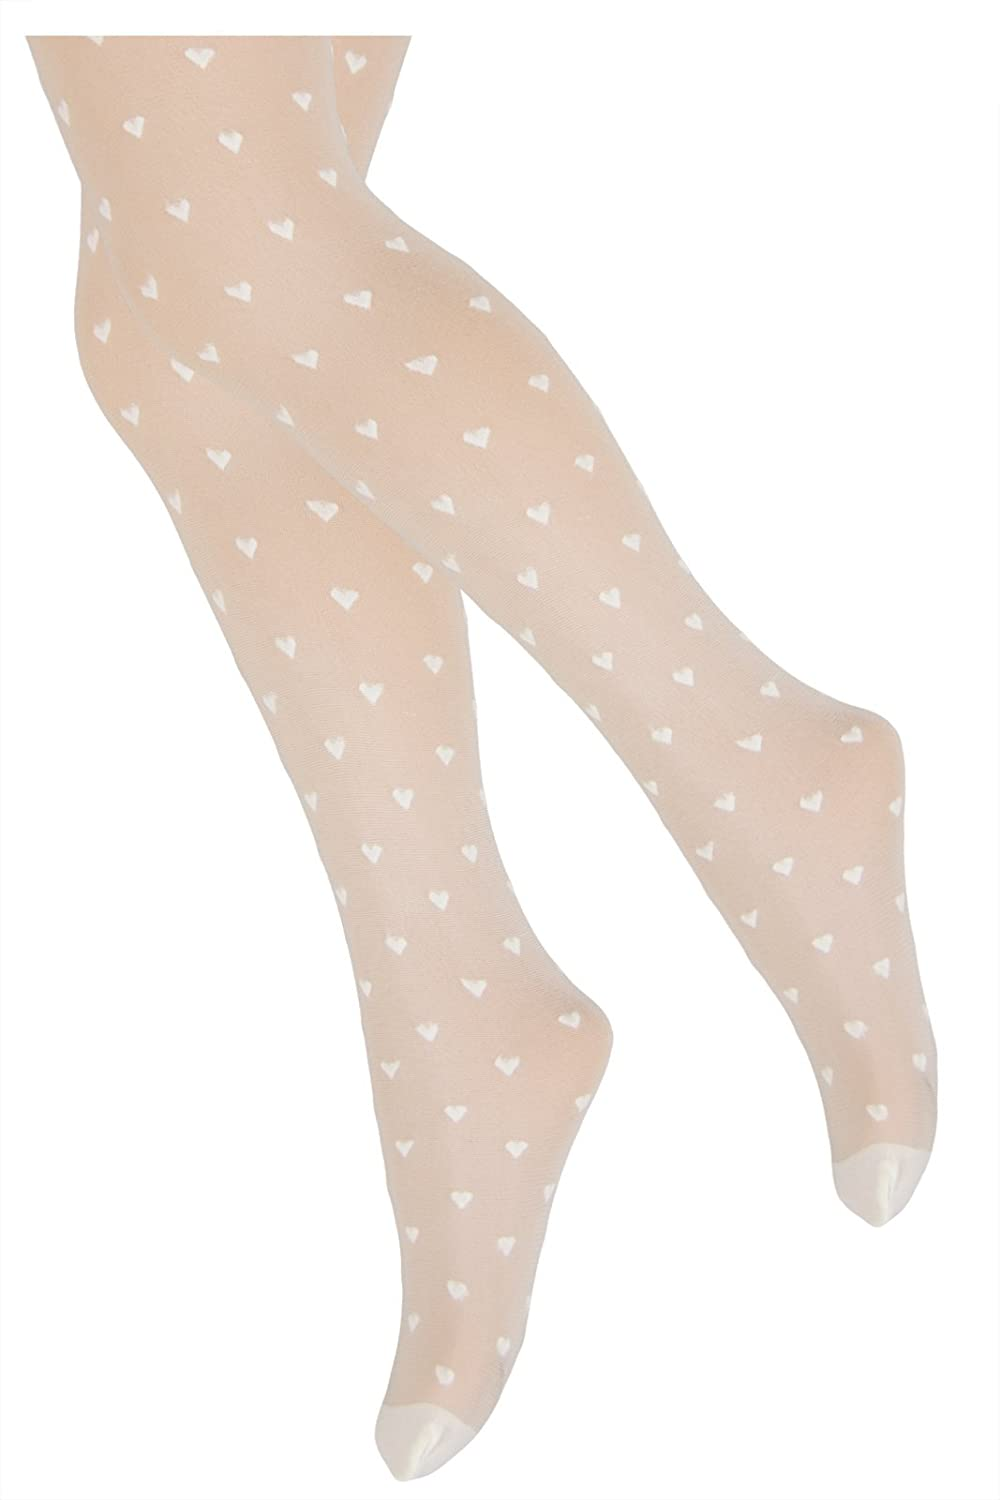 TLLC Girls Ivory/Cream Tights 20 Denier Sheer Multi Hearts Pattern For Special Occasions